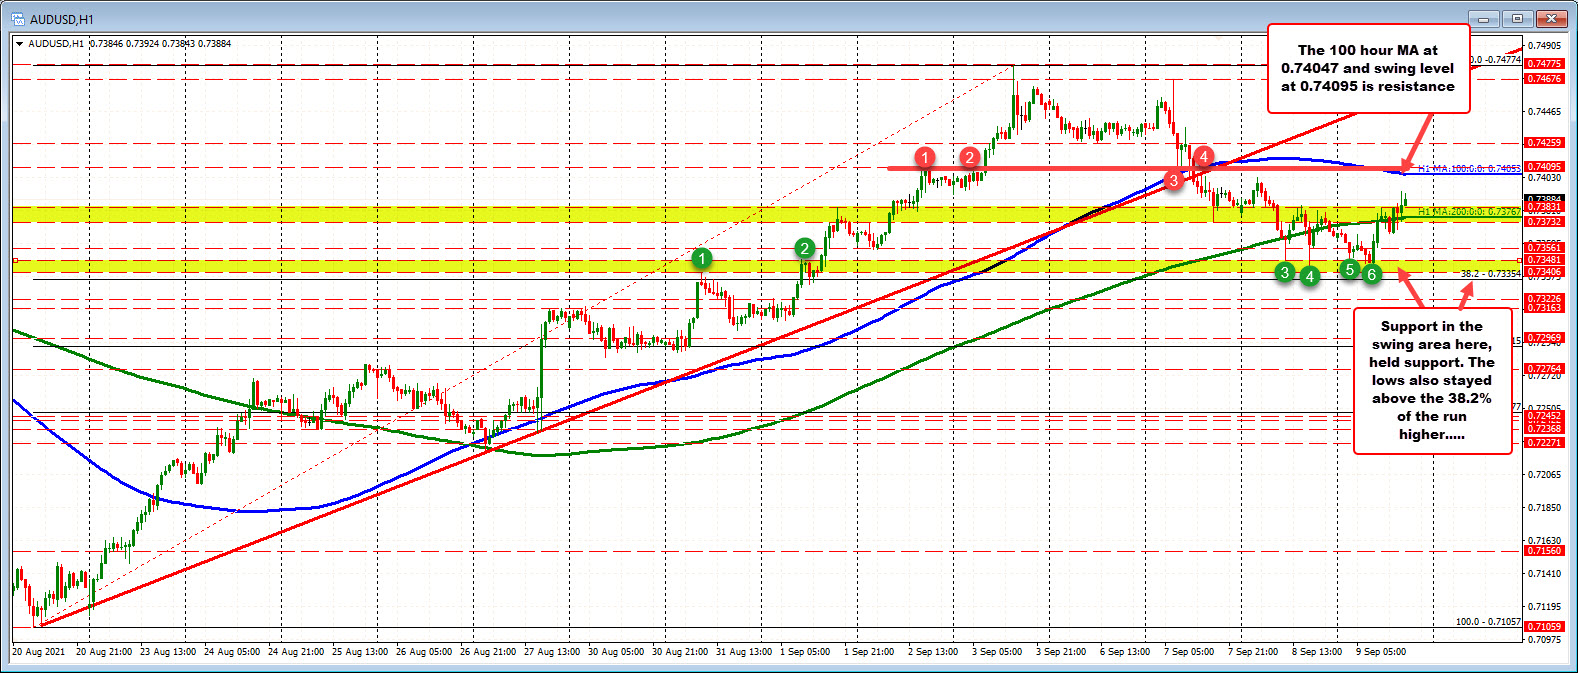 AUDUSD is back above the 200 hour MA. Can the price stay above?